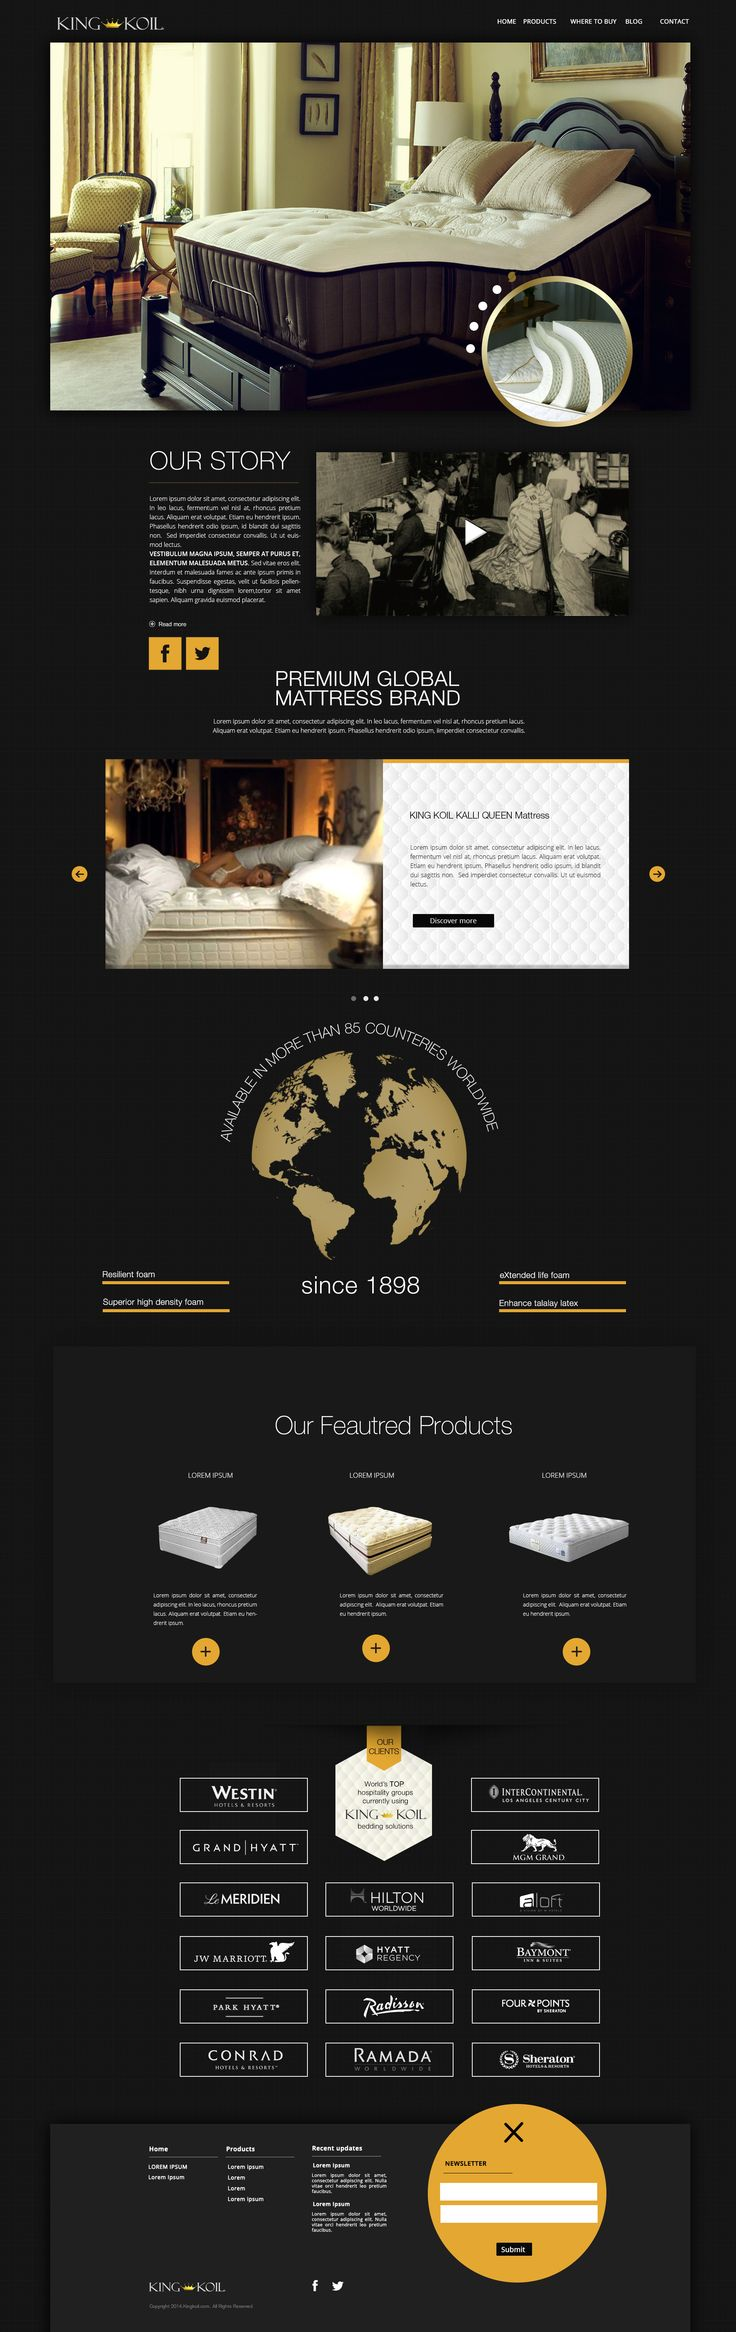 | king koil | luxury mattresses homepage layout #madproduction --- if U like it, contact us at madproduction.it ---